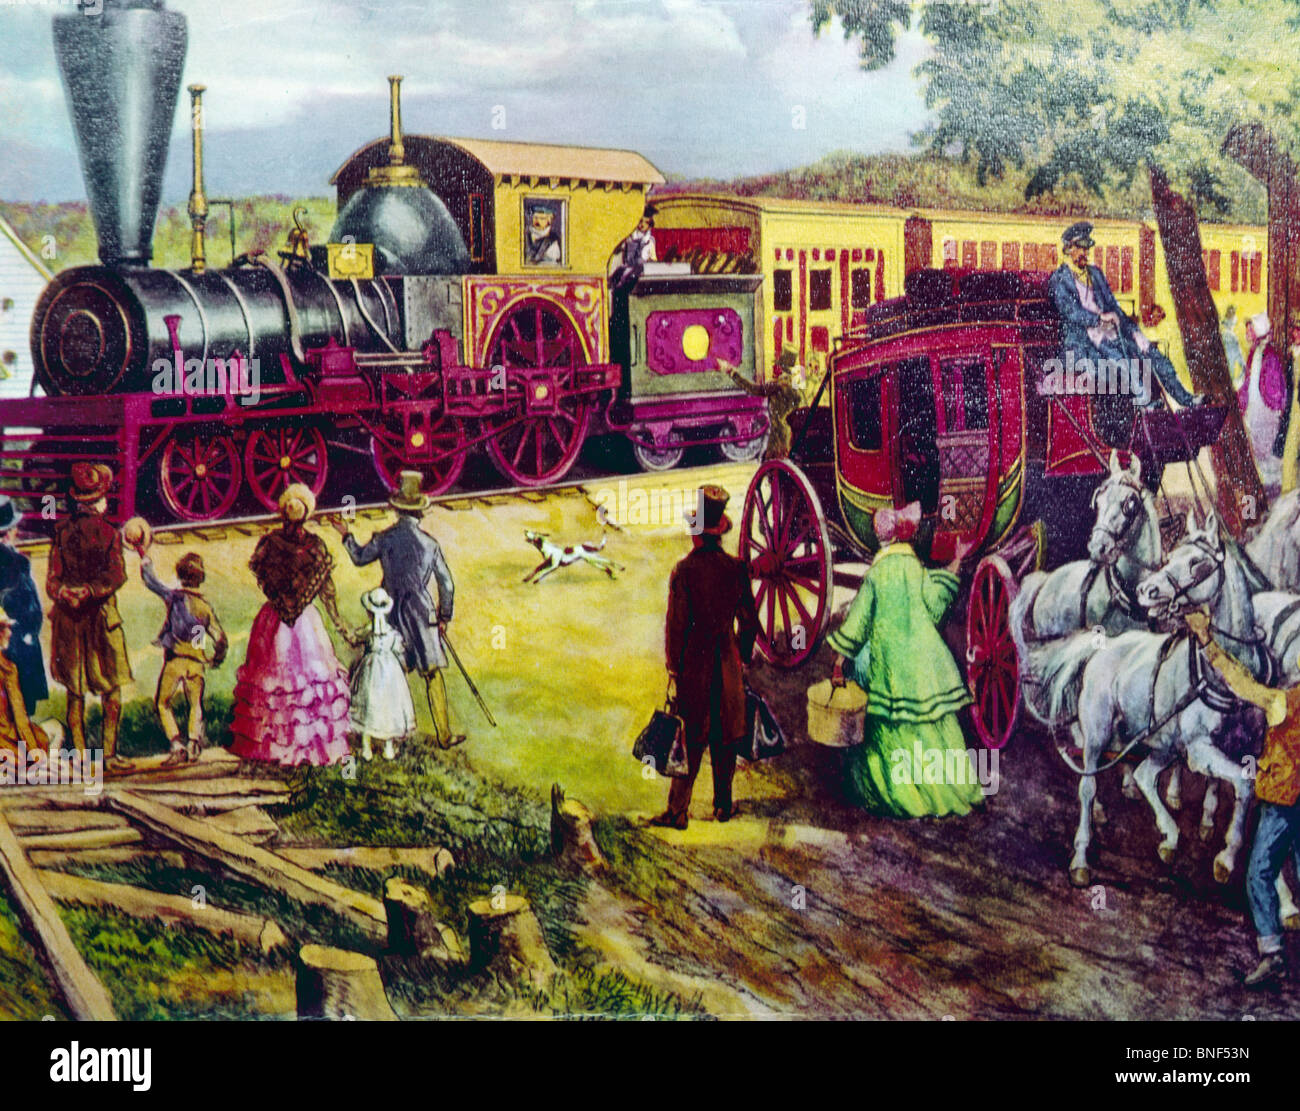 First Train In Town In 1860's, artist unknown - Stock Image